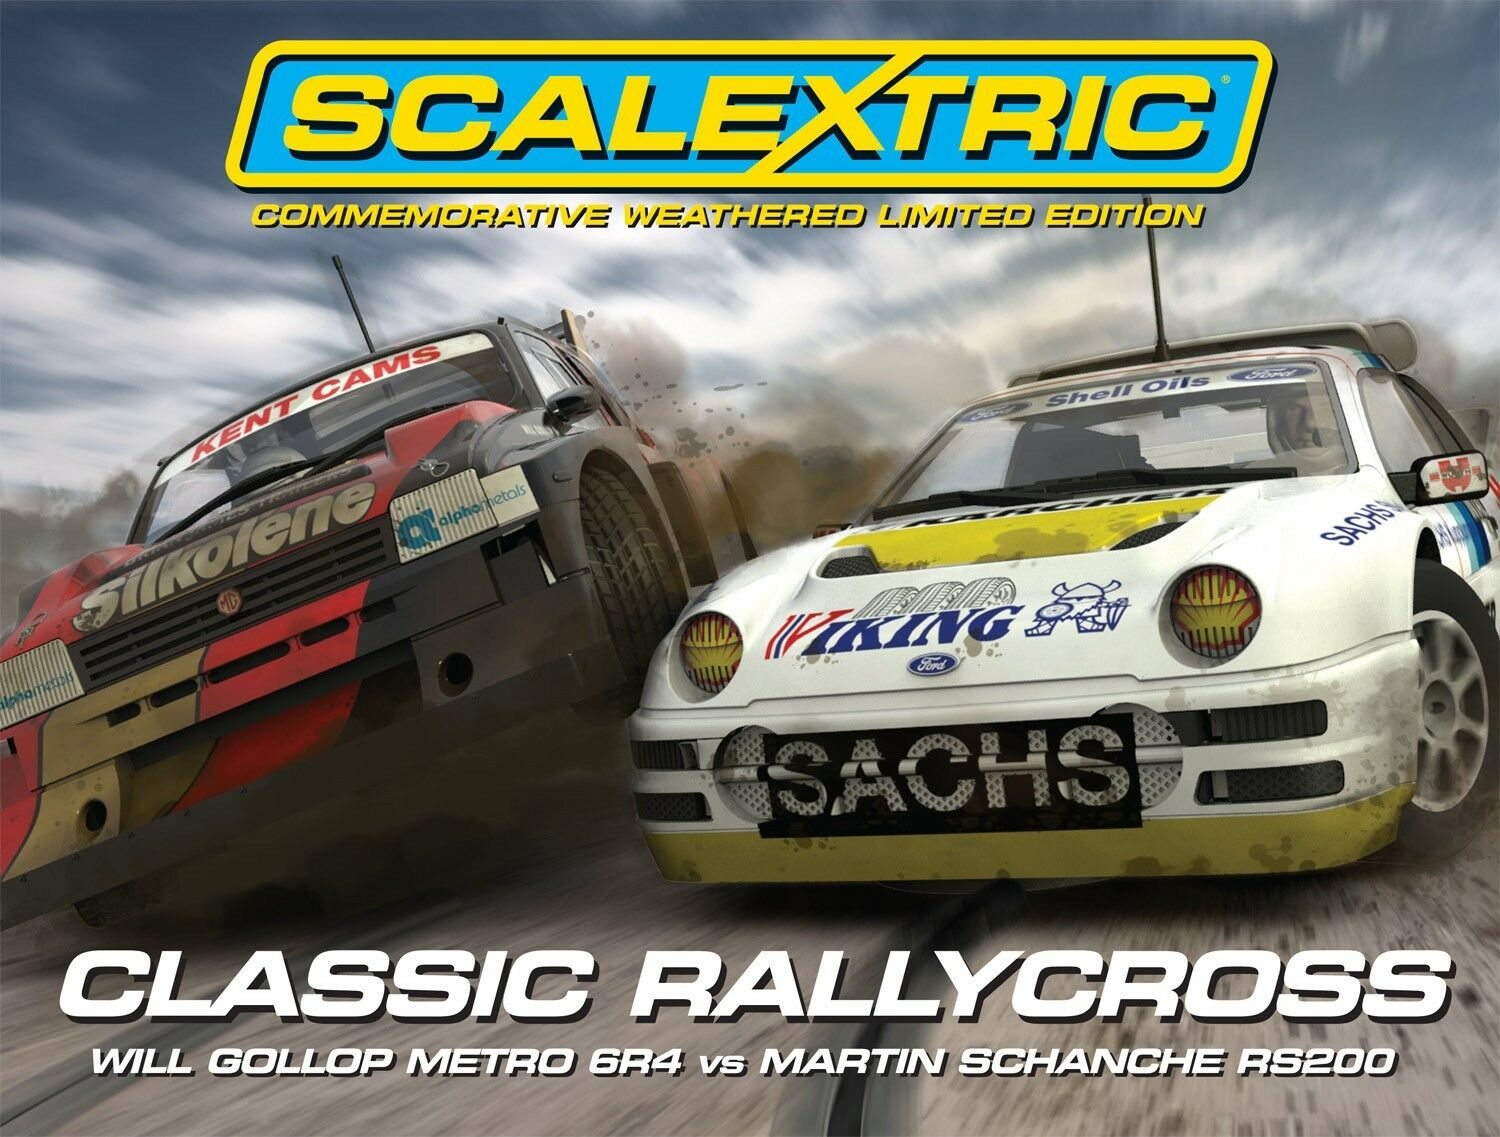 Scalextric C3267A Classic Rallycross Champions Limited Edition